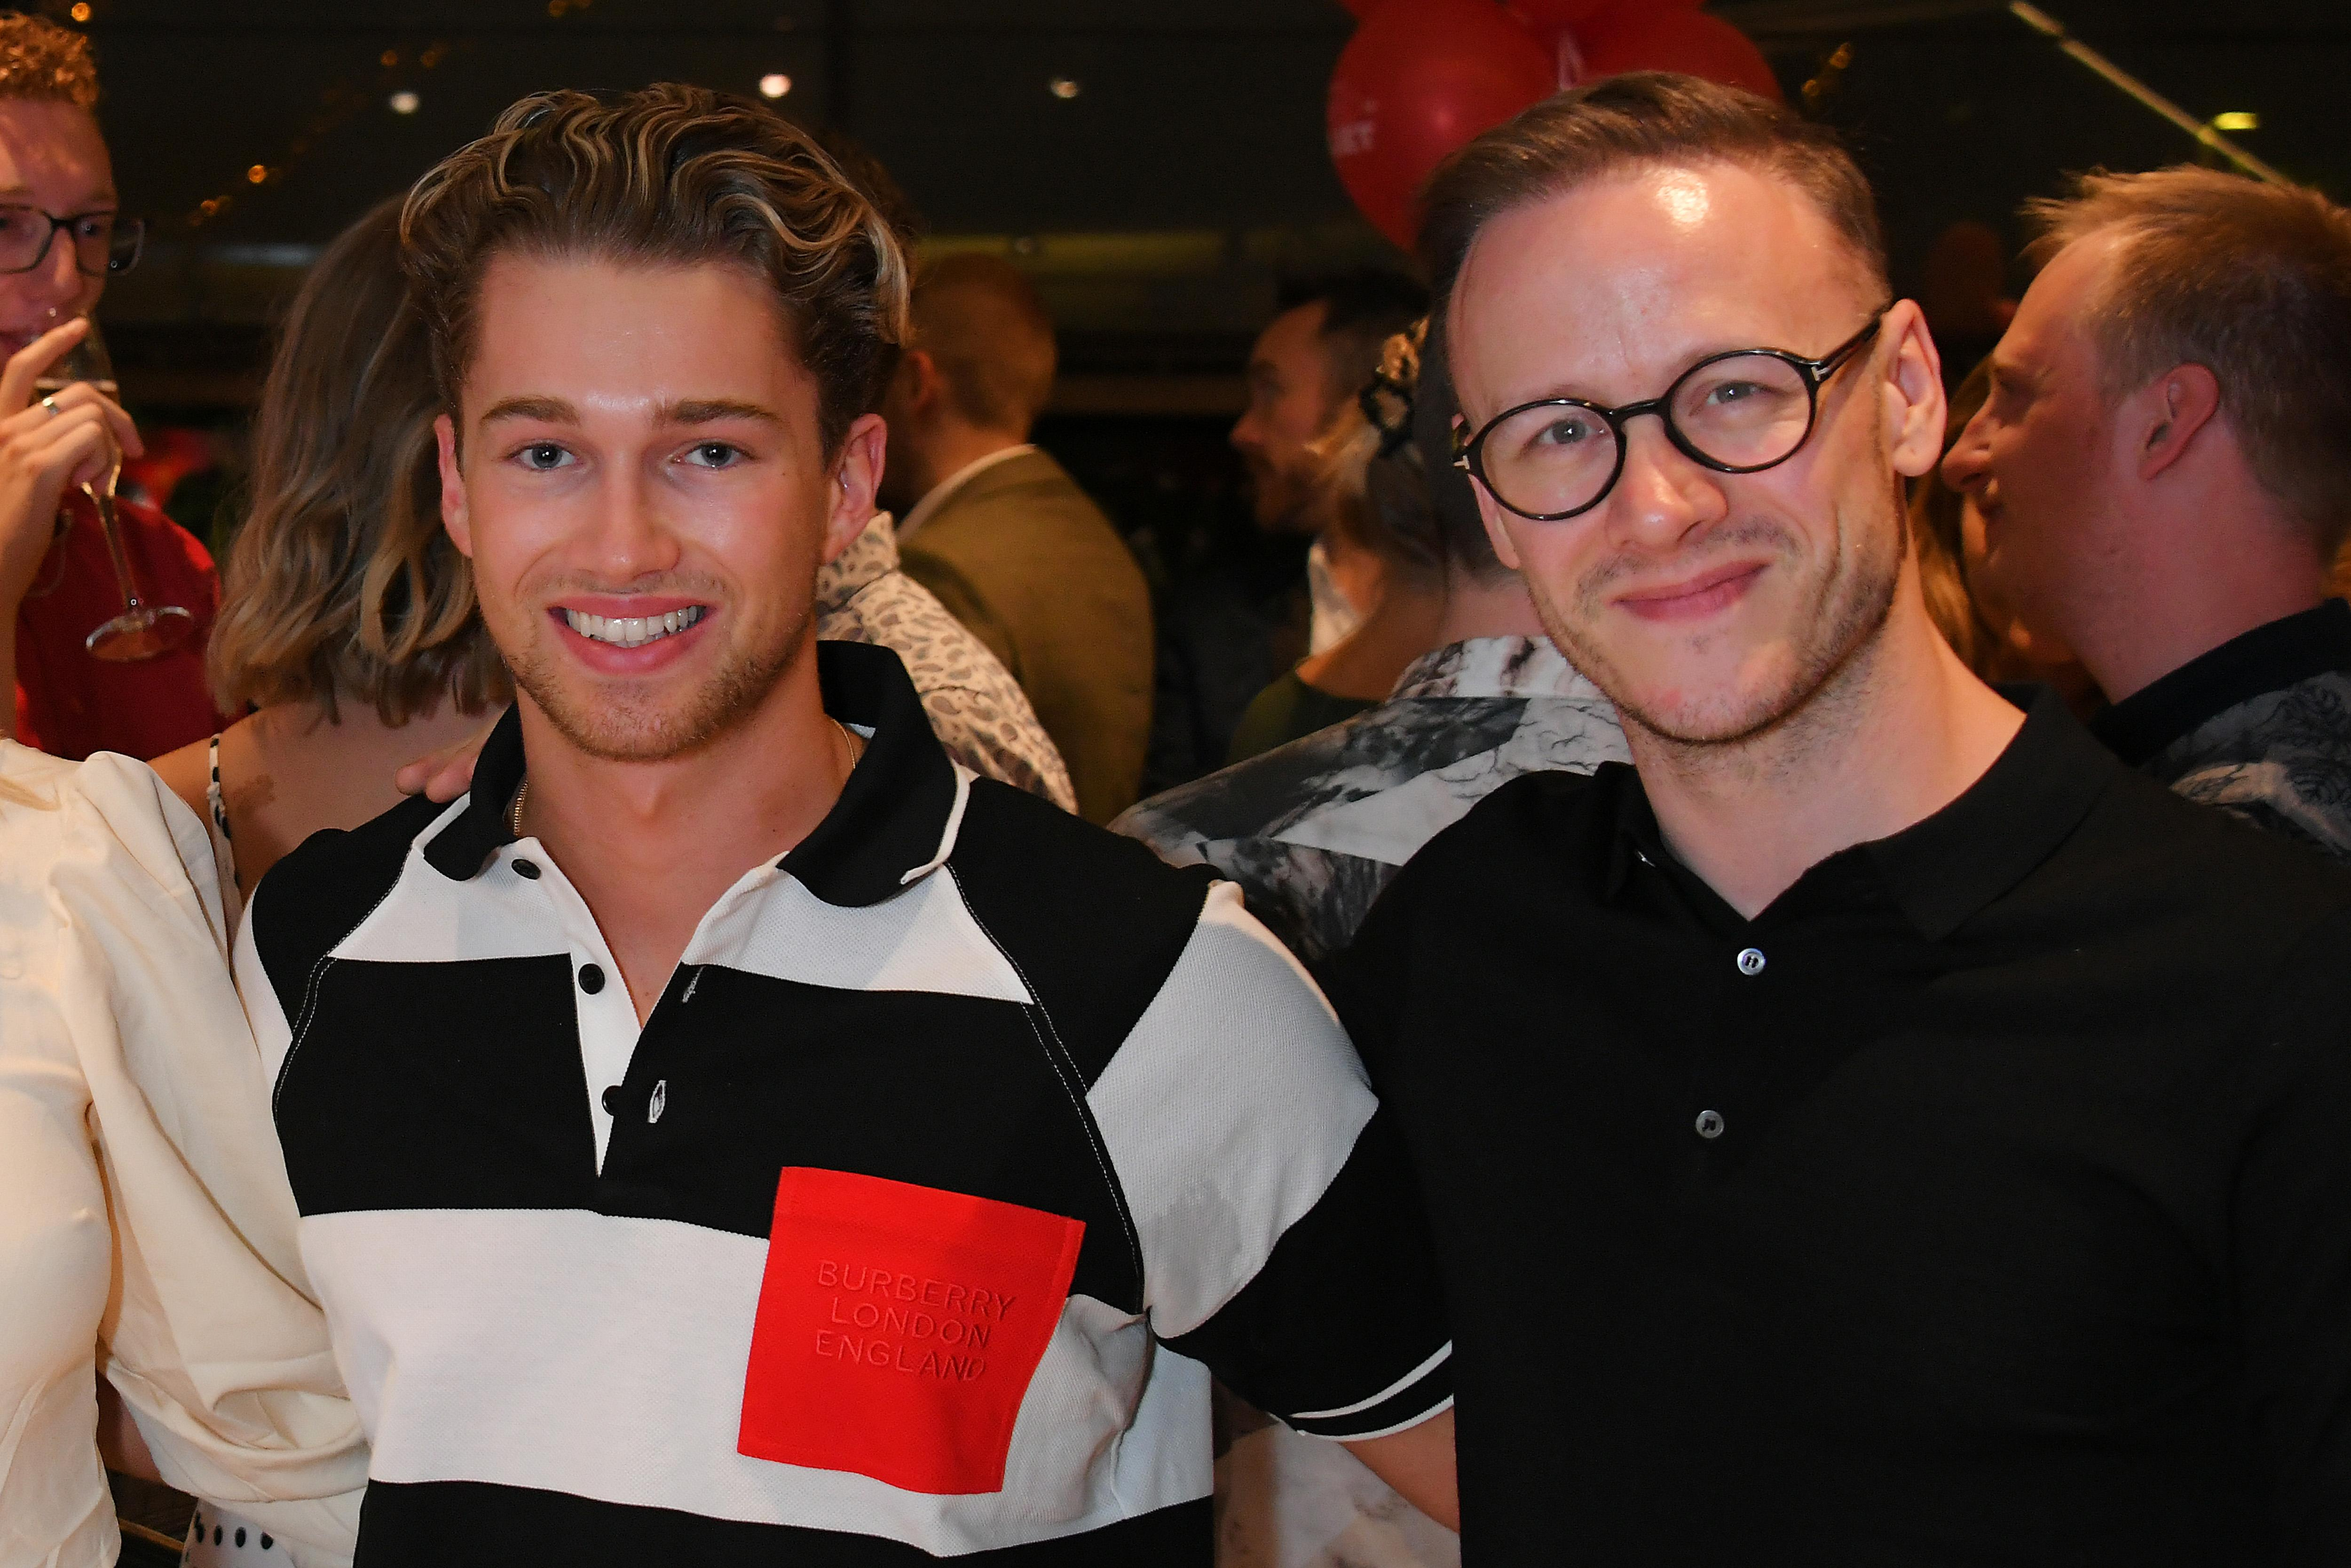 'Strictly' dancer Kevin Clifton recalls AJ Pritchard trying to steal partner Stacey Dooley